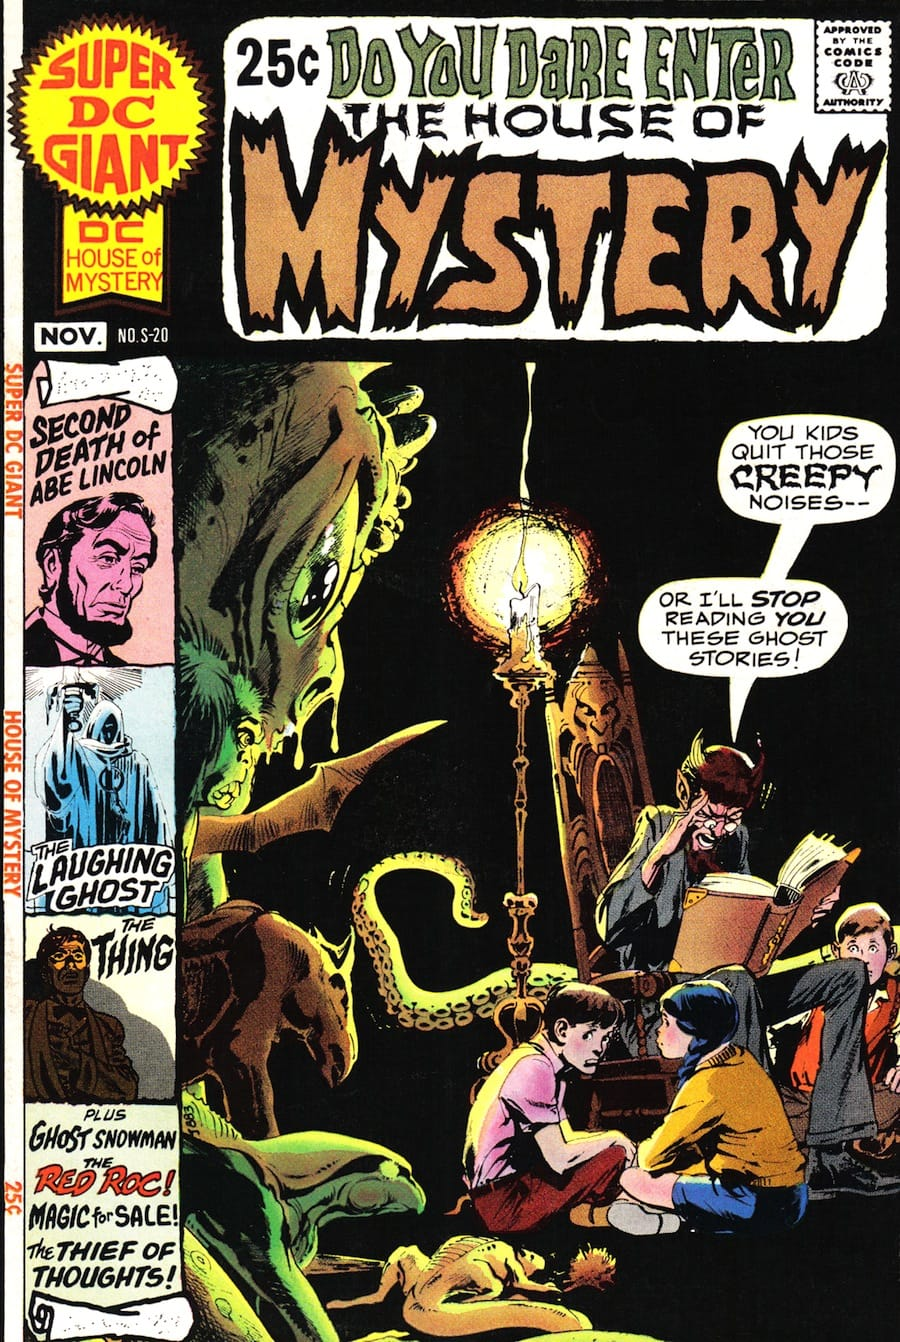 super dc giant s 20 house of mystery neal adams cover jack